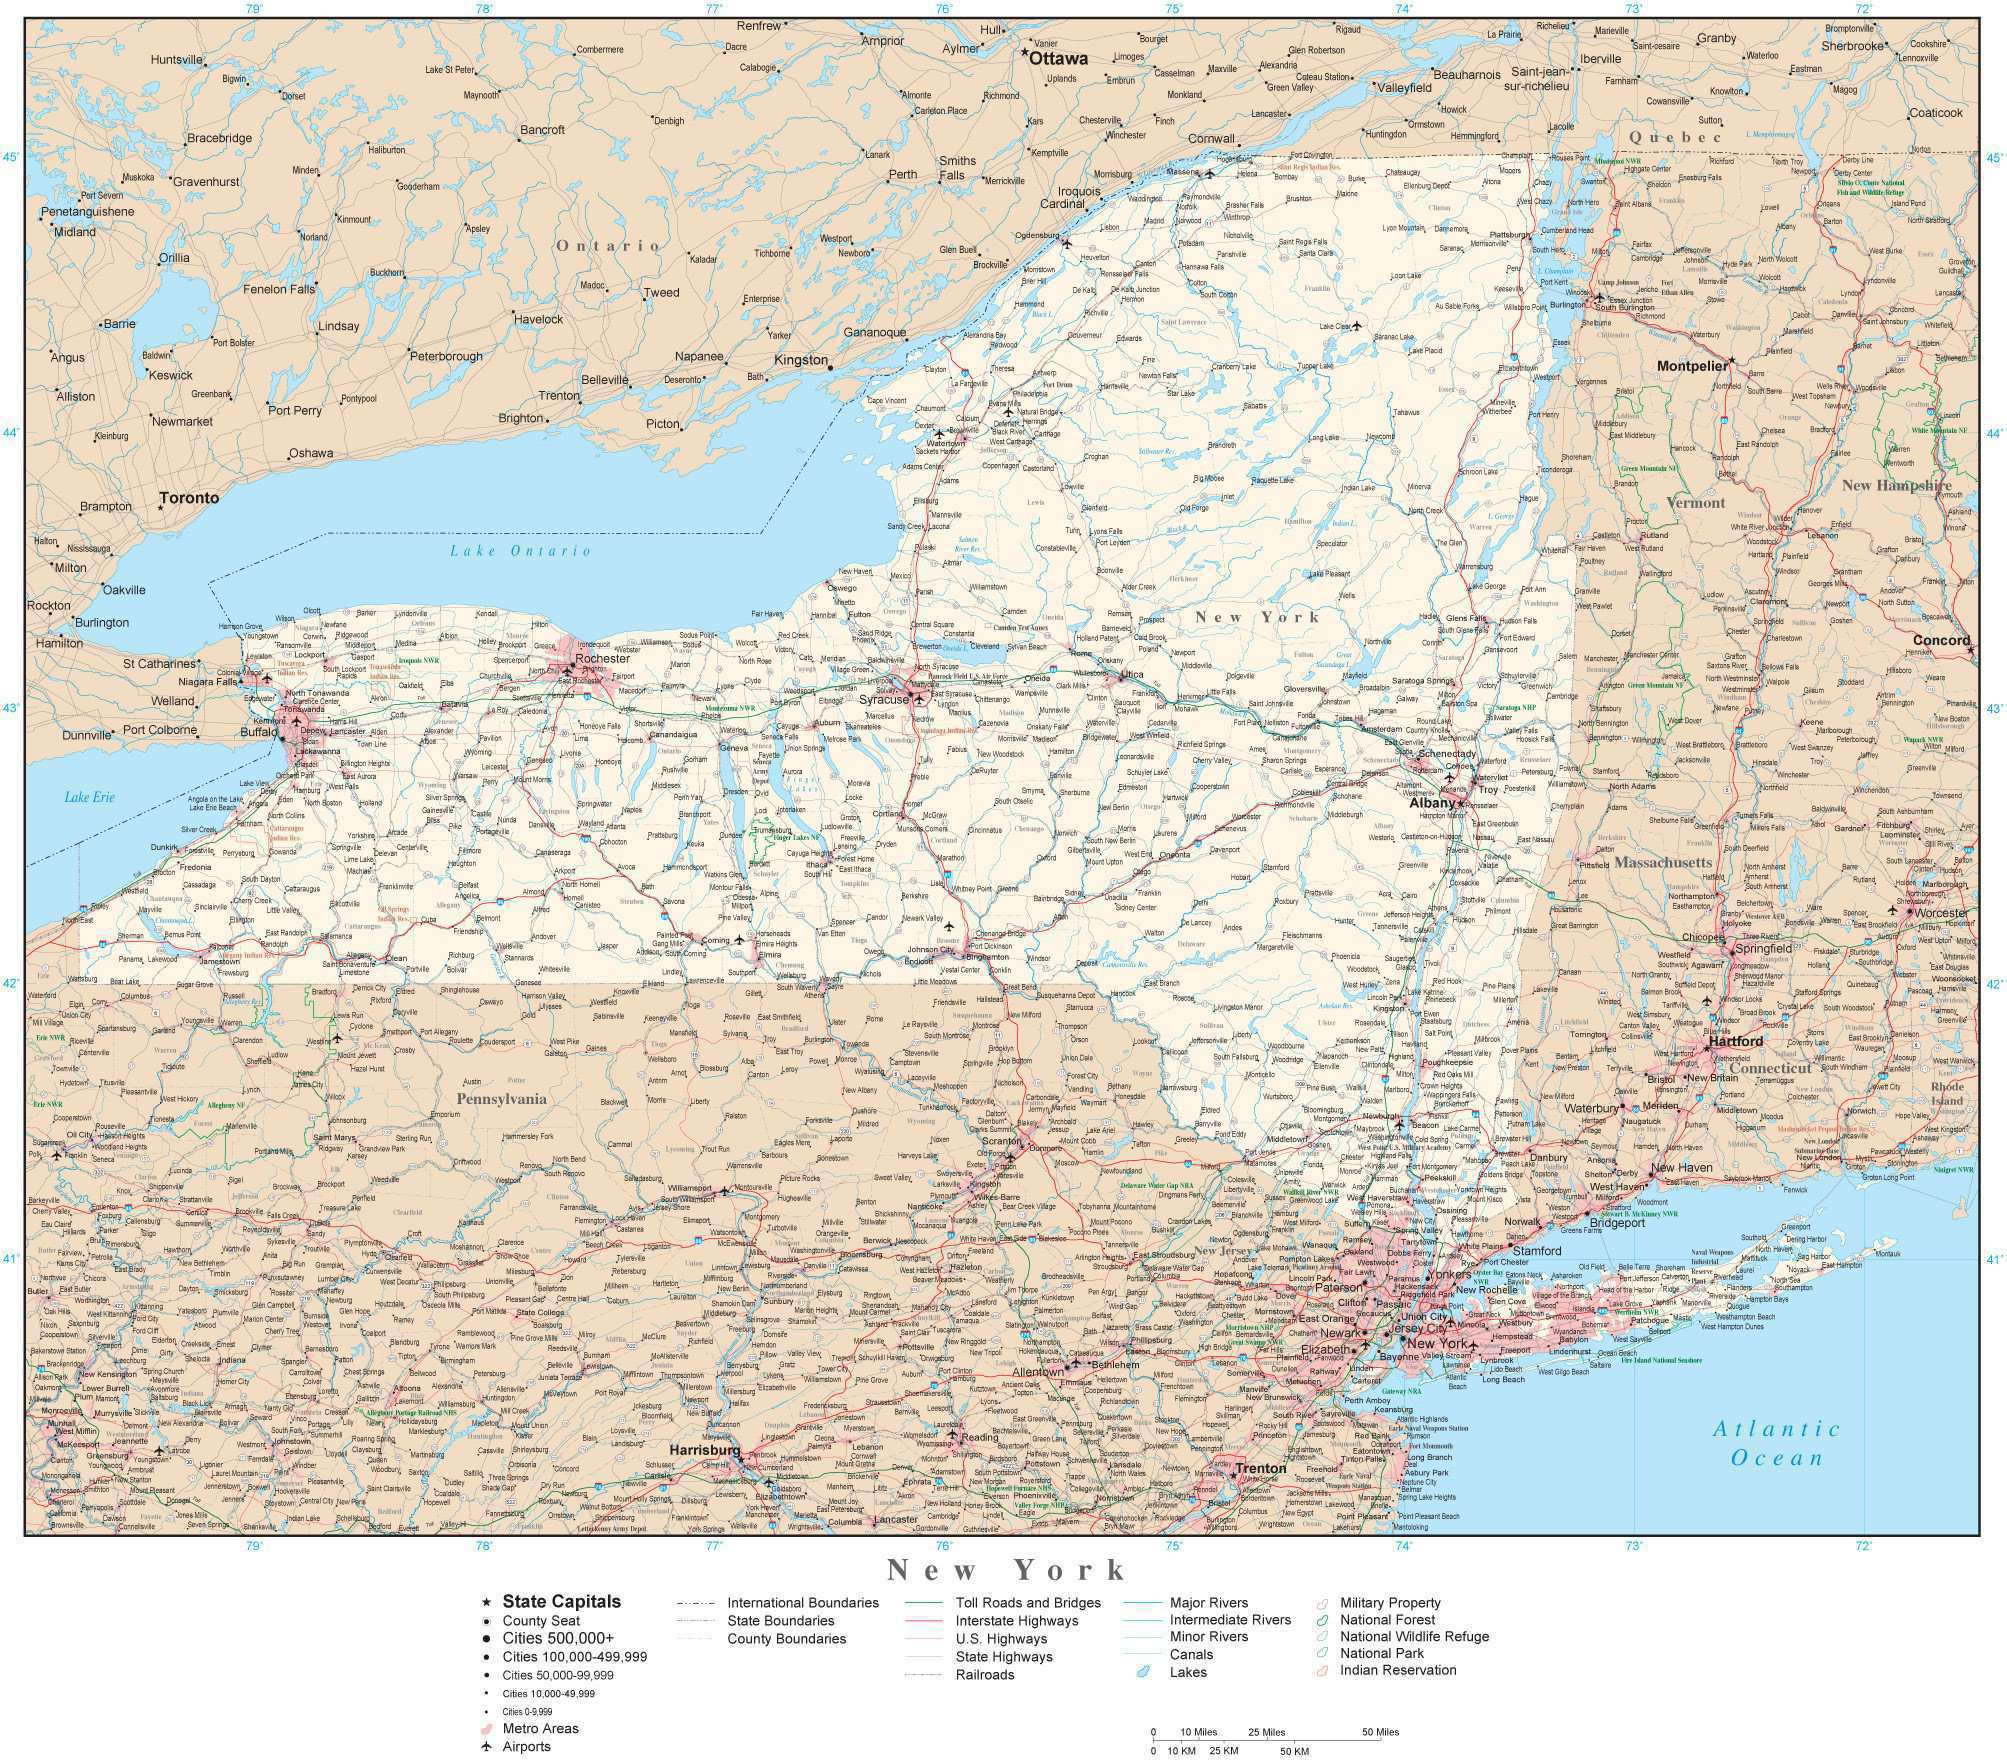 New York Detailed Map In Adobe Illustrator Vector Format Detailed